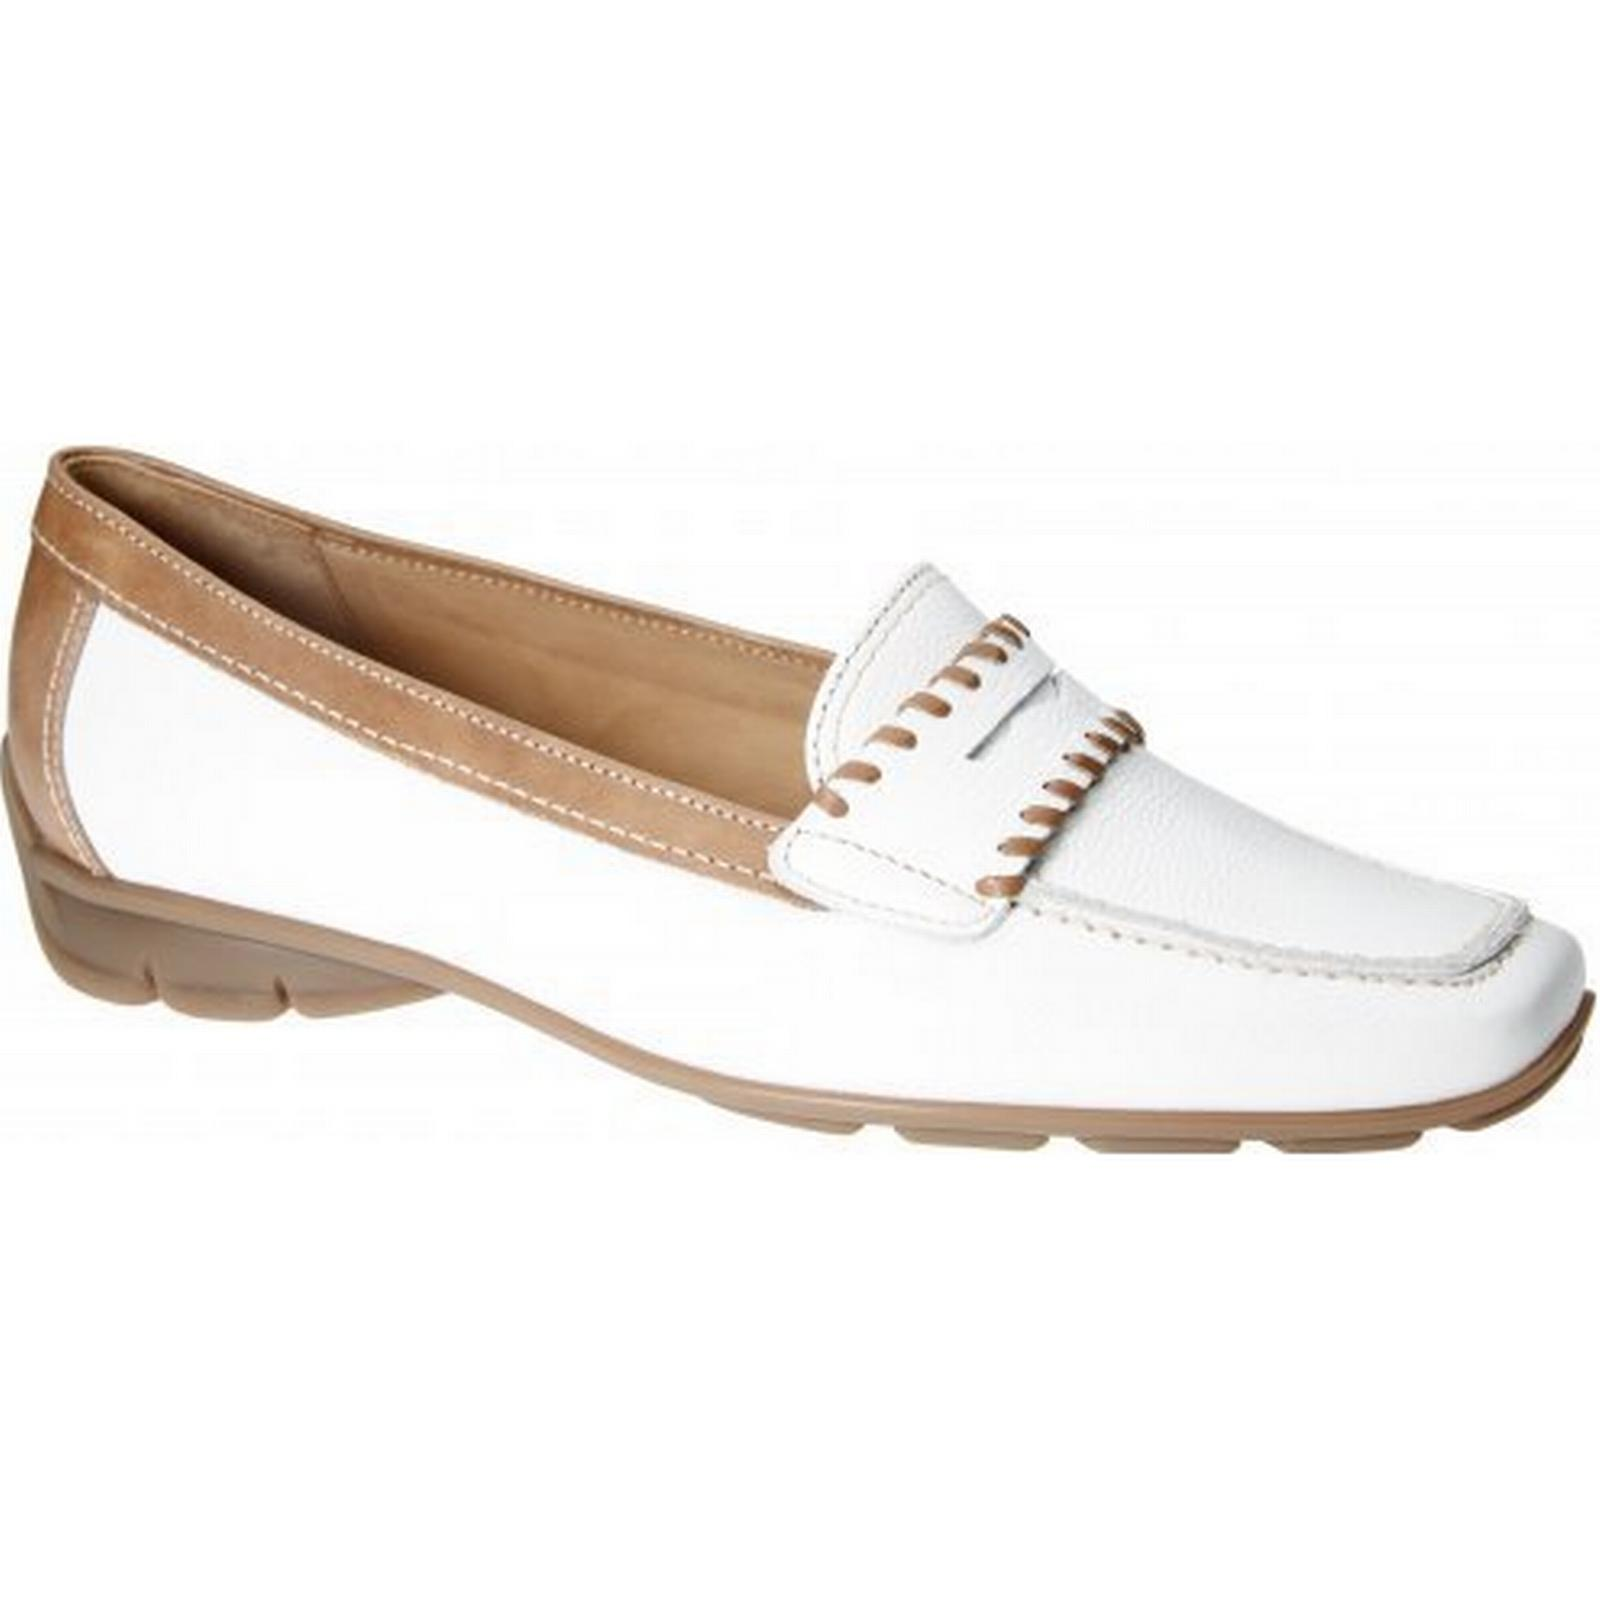 Gabor BLISSFUL GABOR SHOES BLISFUL 45 330 21 21 330 Size: 3.5, Colour: WHITE 3a1385